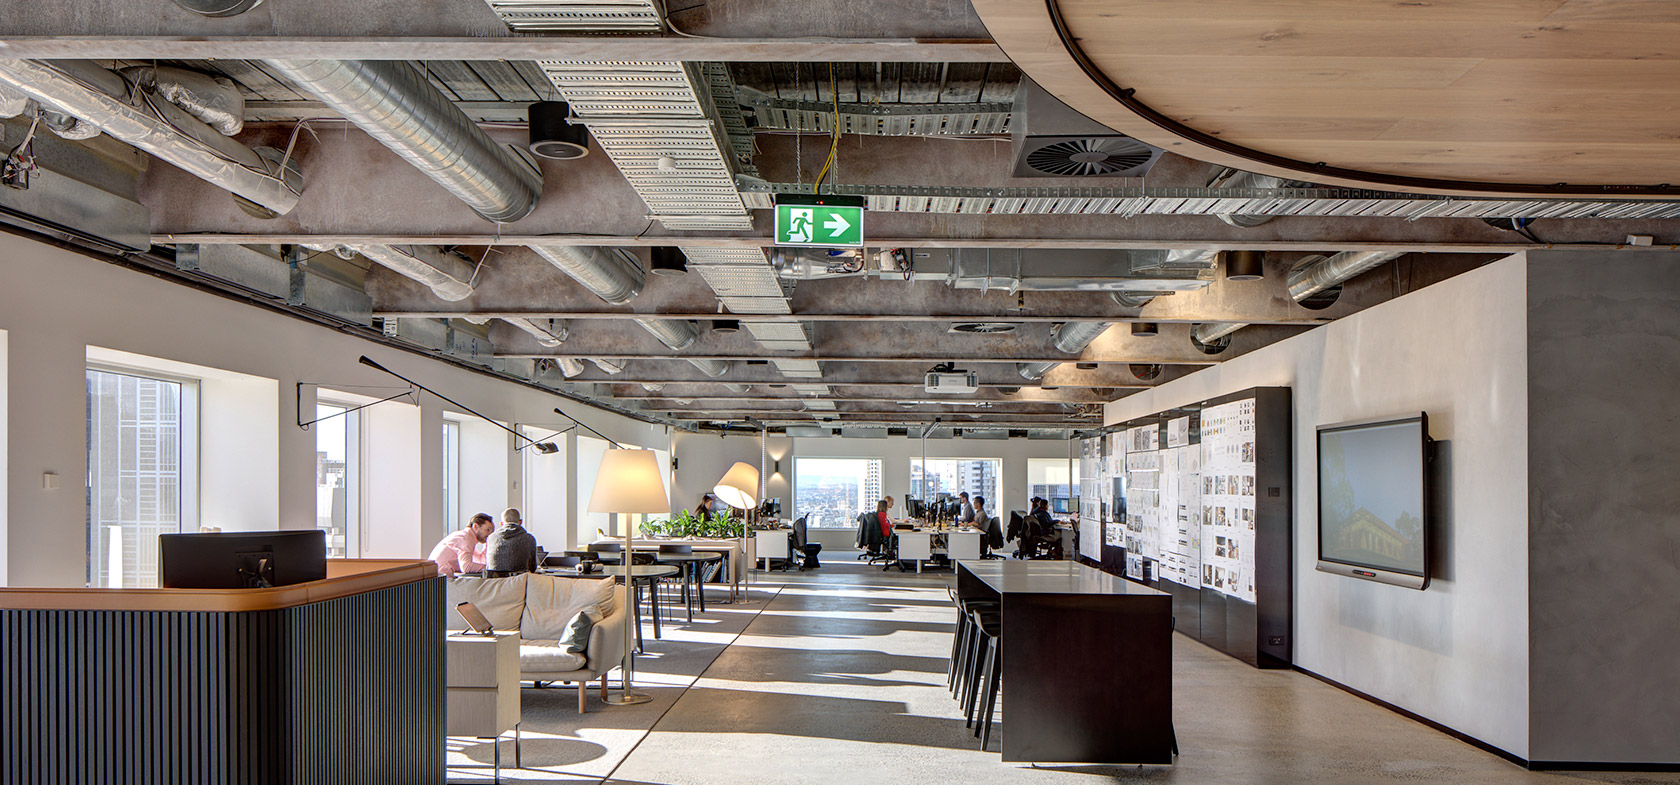 architectus office interior fitout melbourne exposed ceiling steal beams